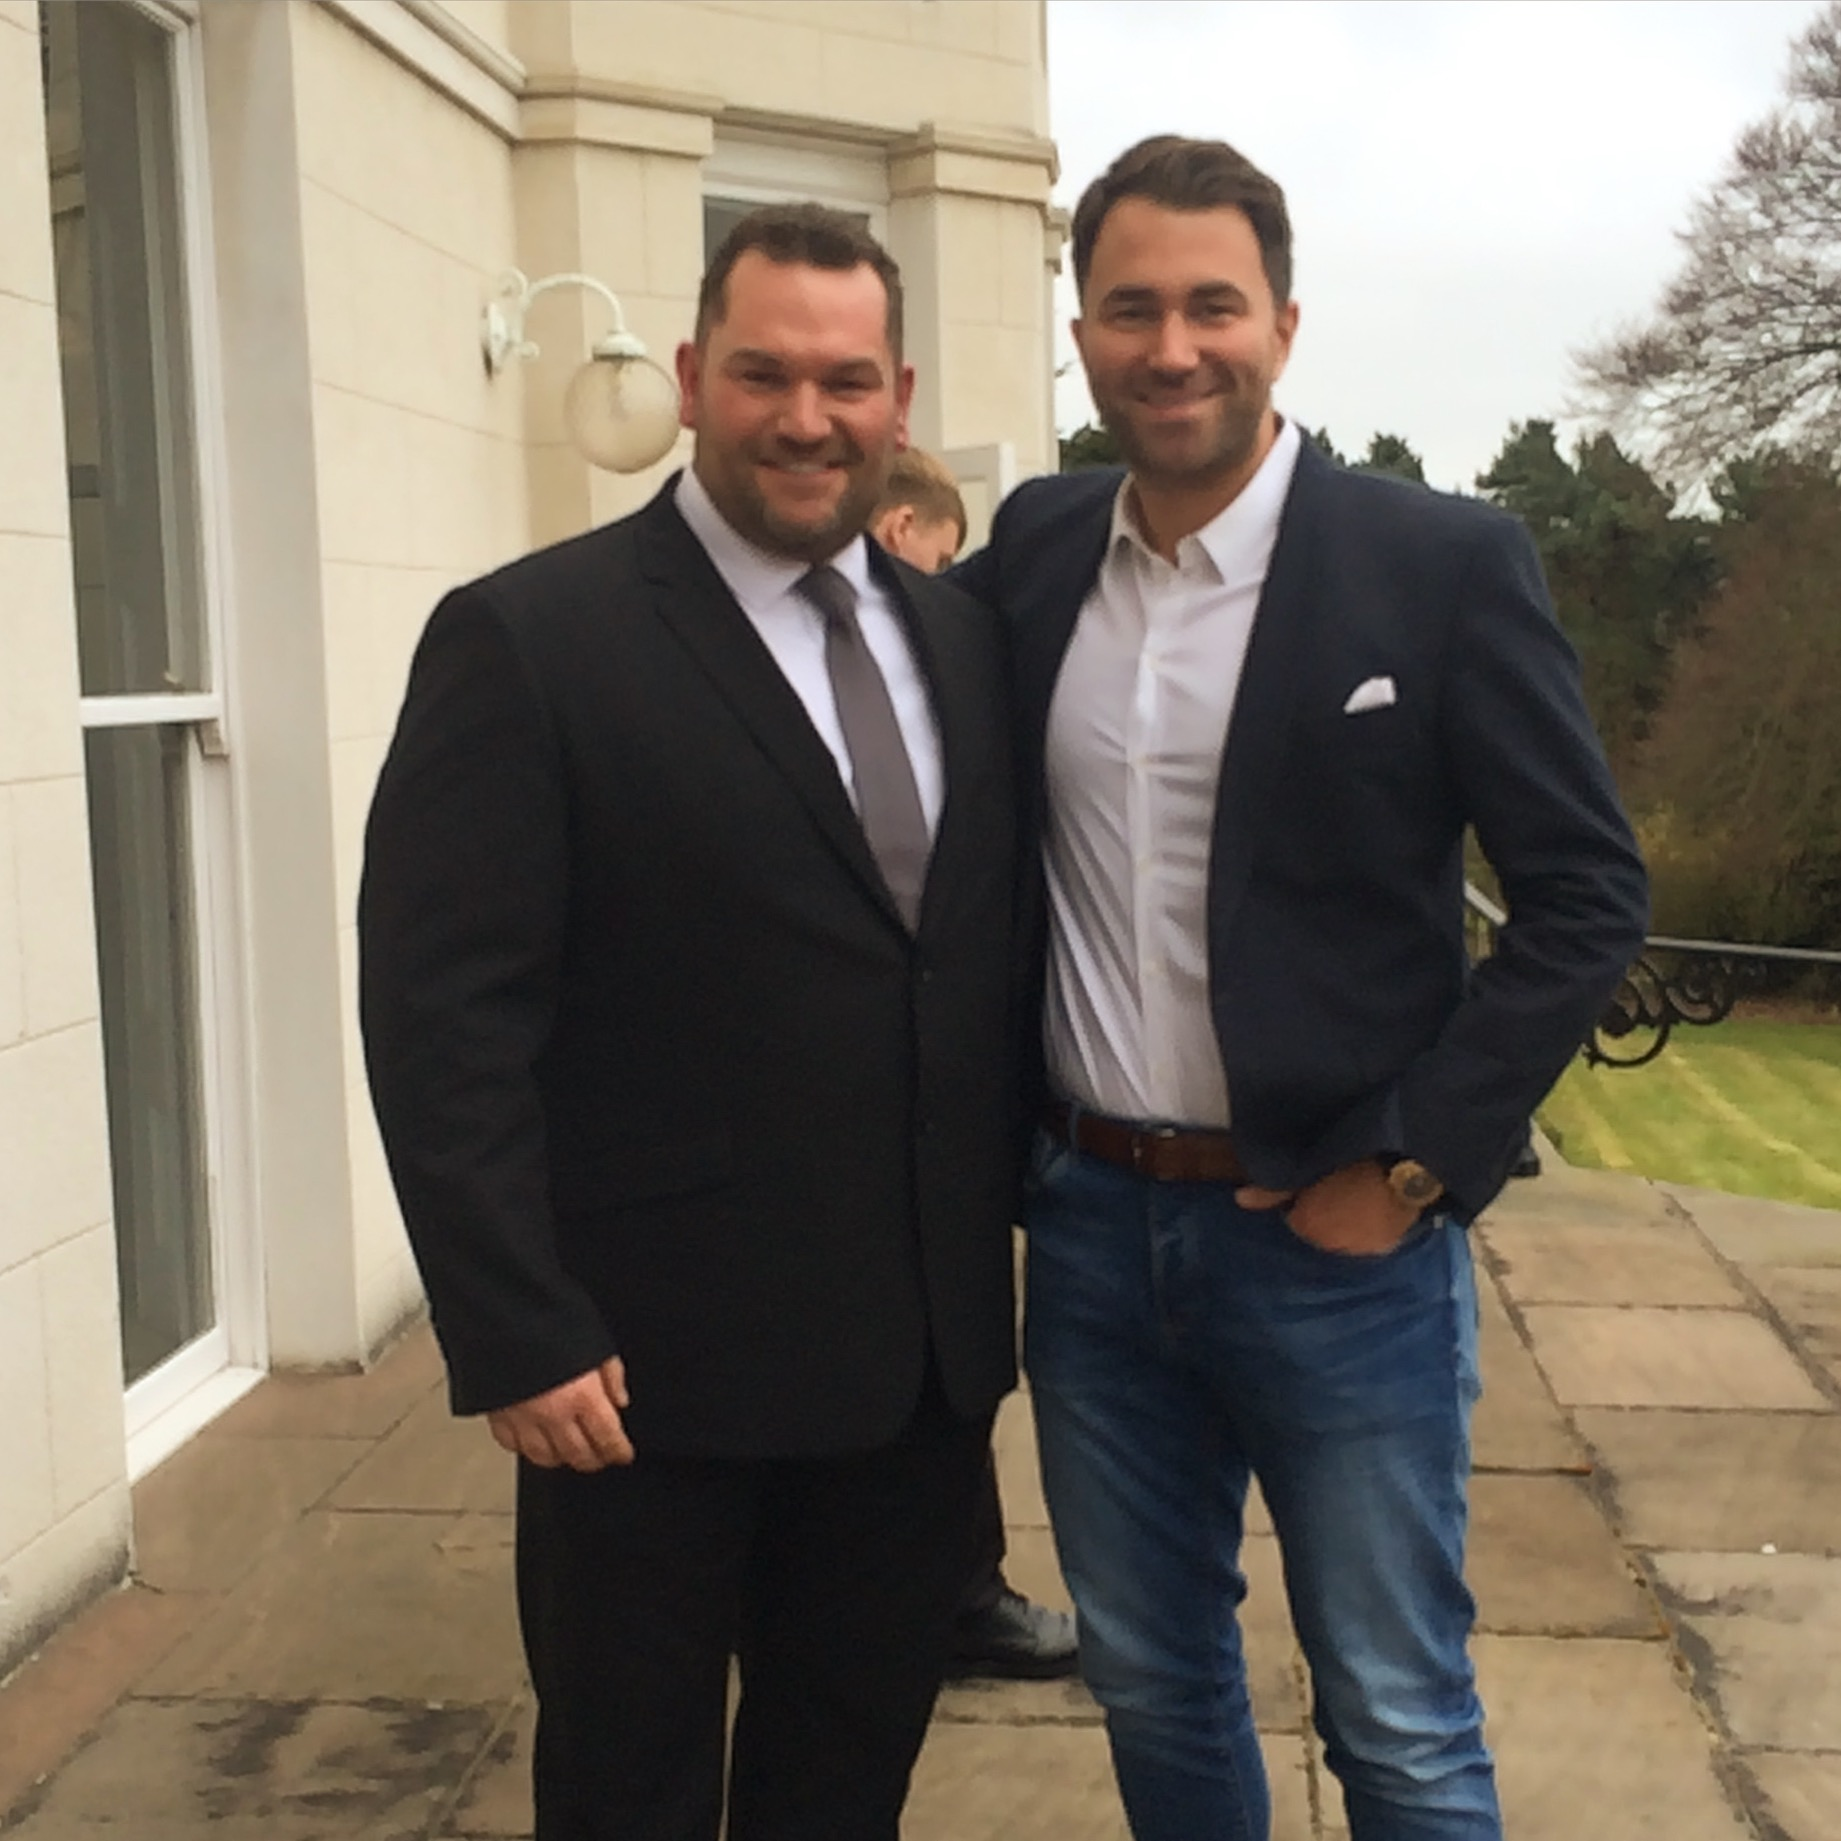 Marc with Eddie Hearn of Matchroom Boxing